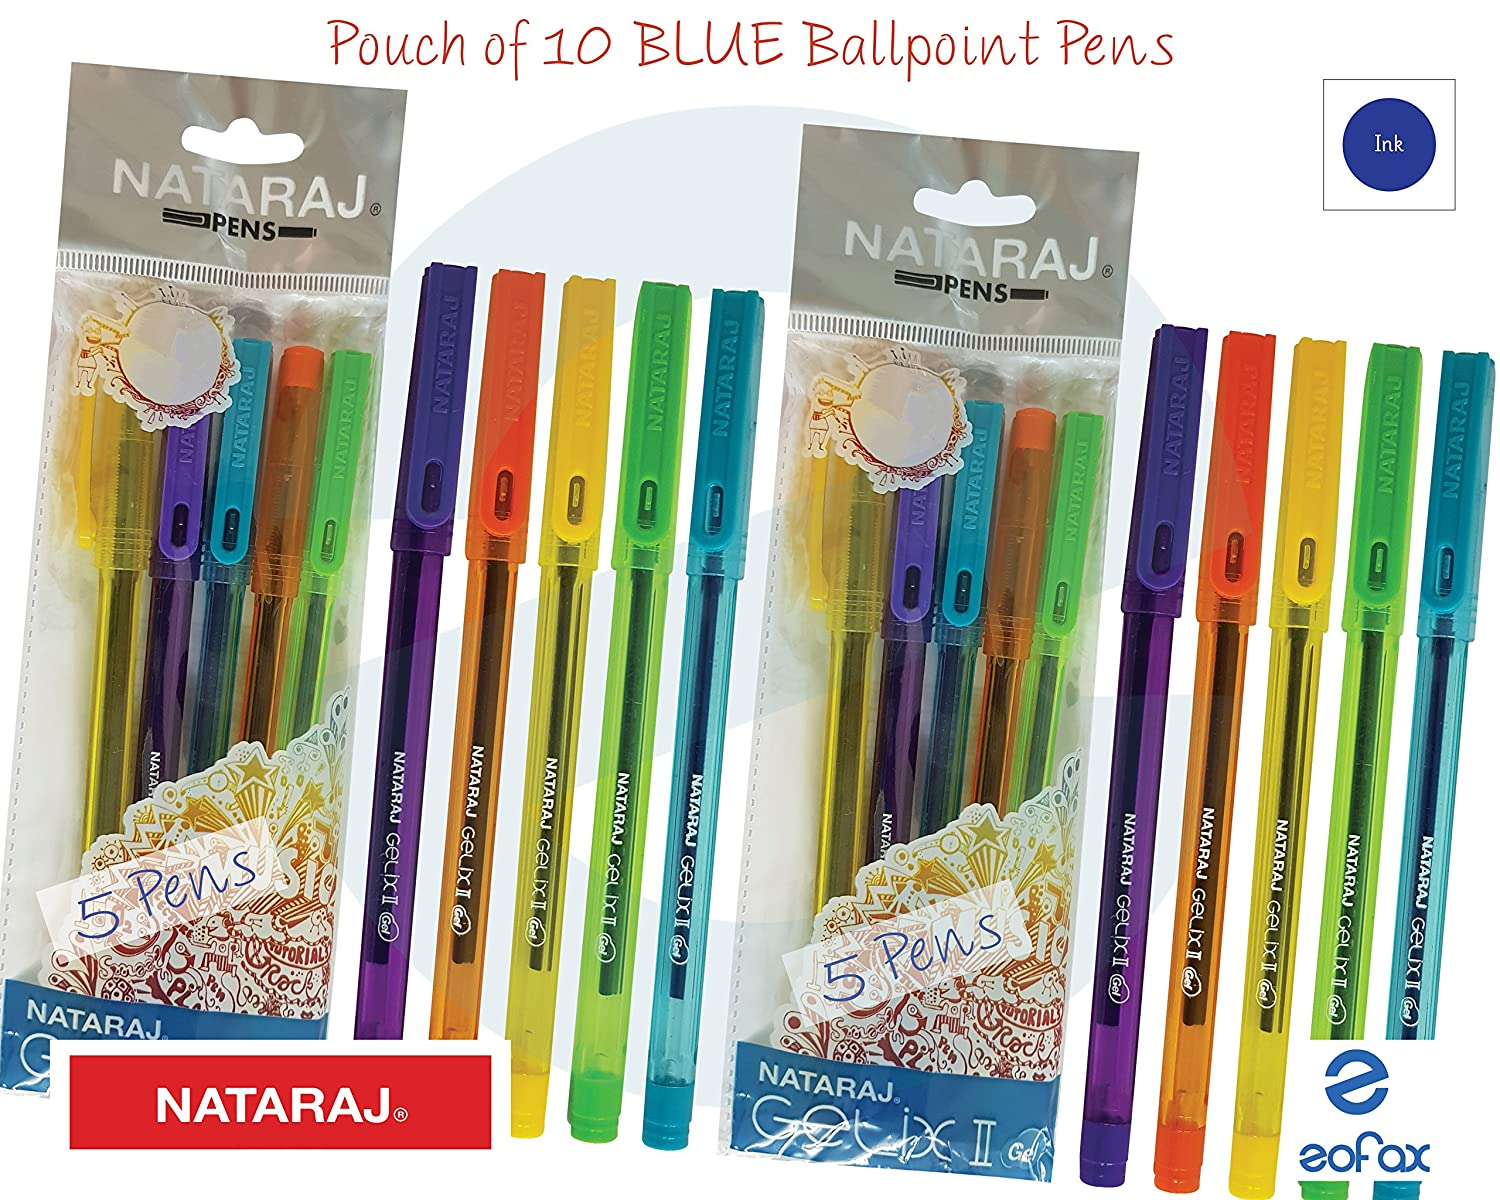 10X Nataraj itip gel Blue pen for Home School /& Office Smooth writing flow